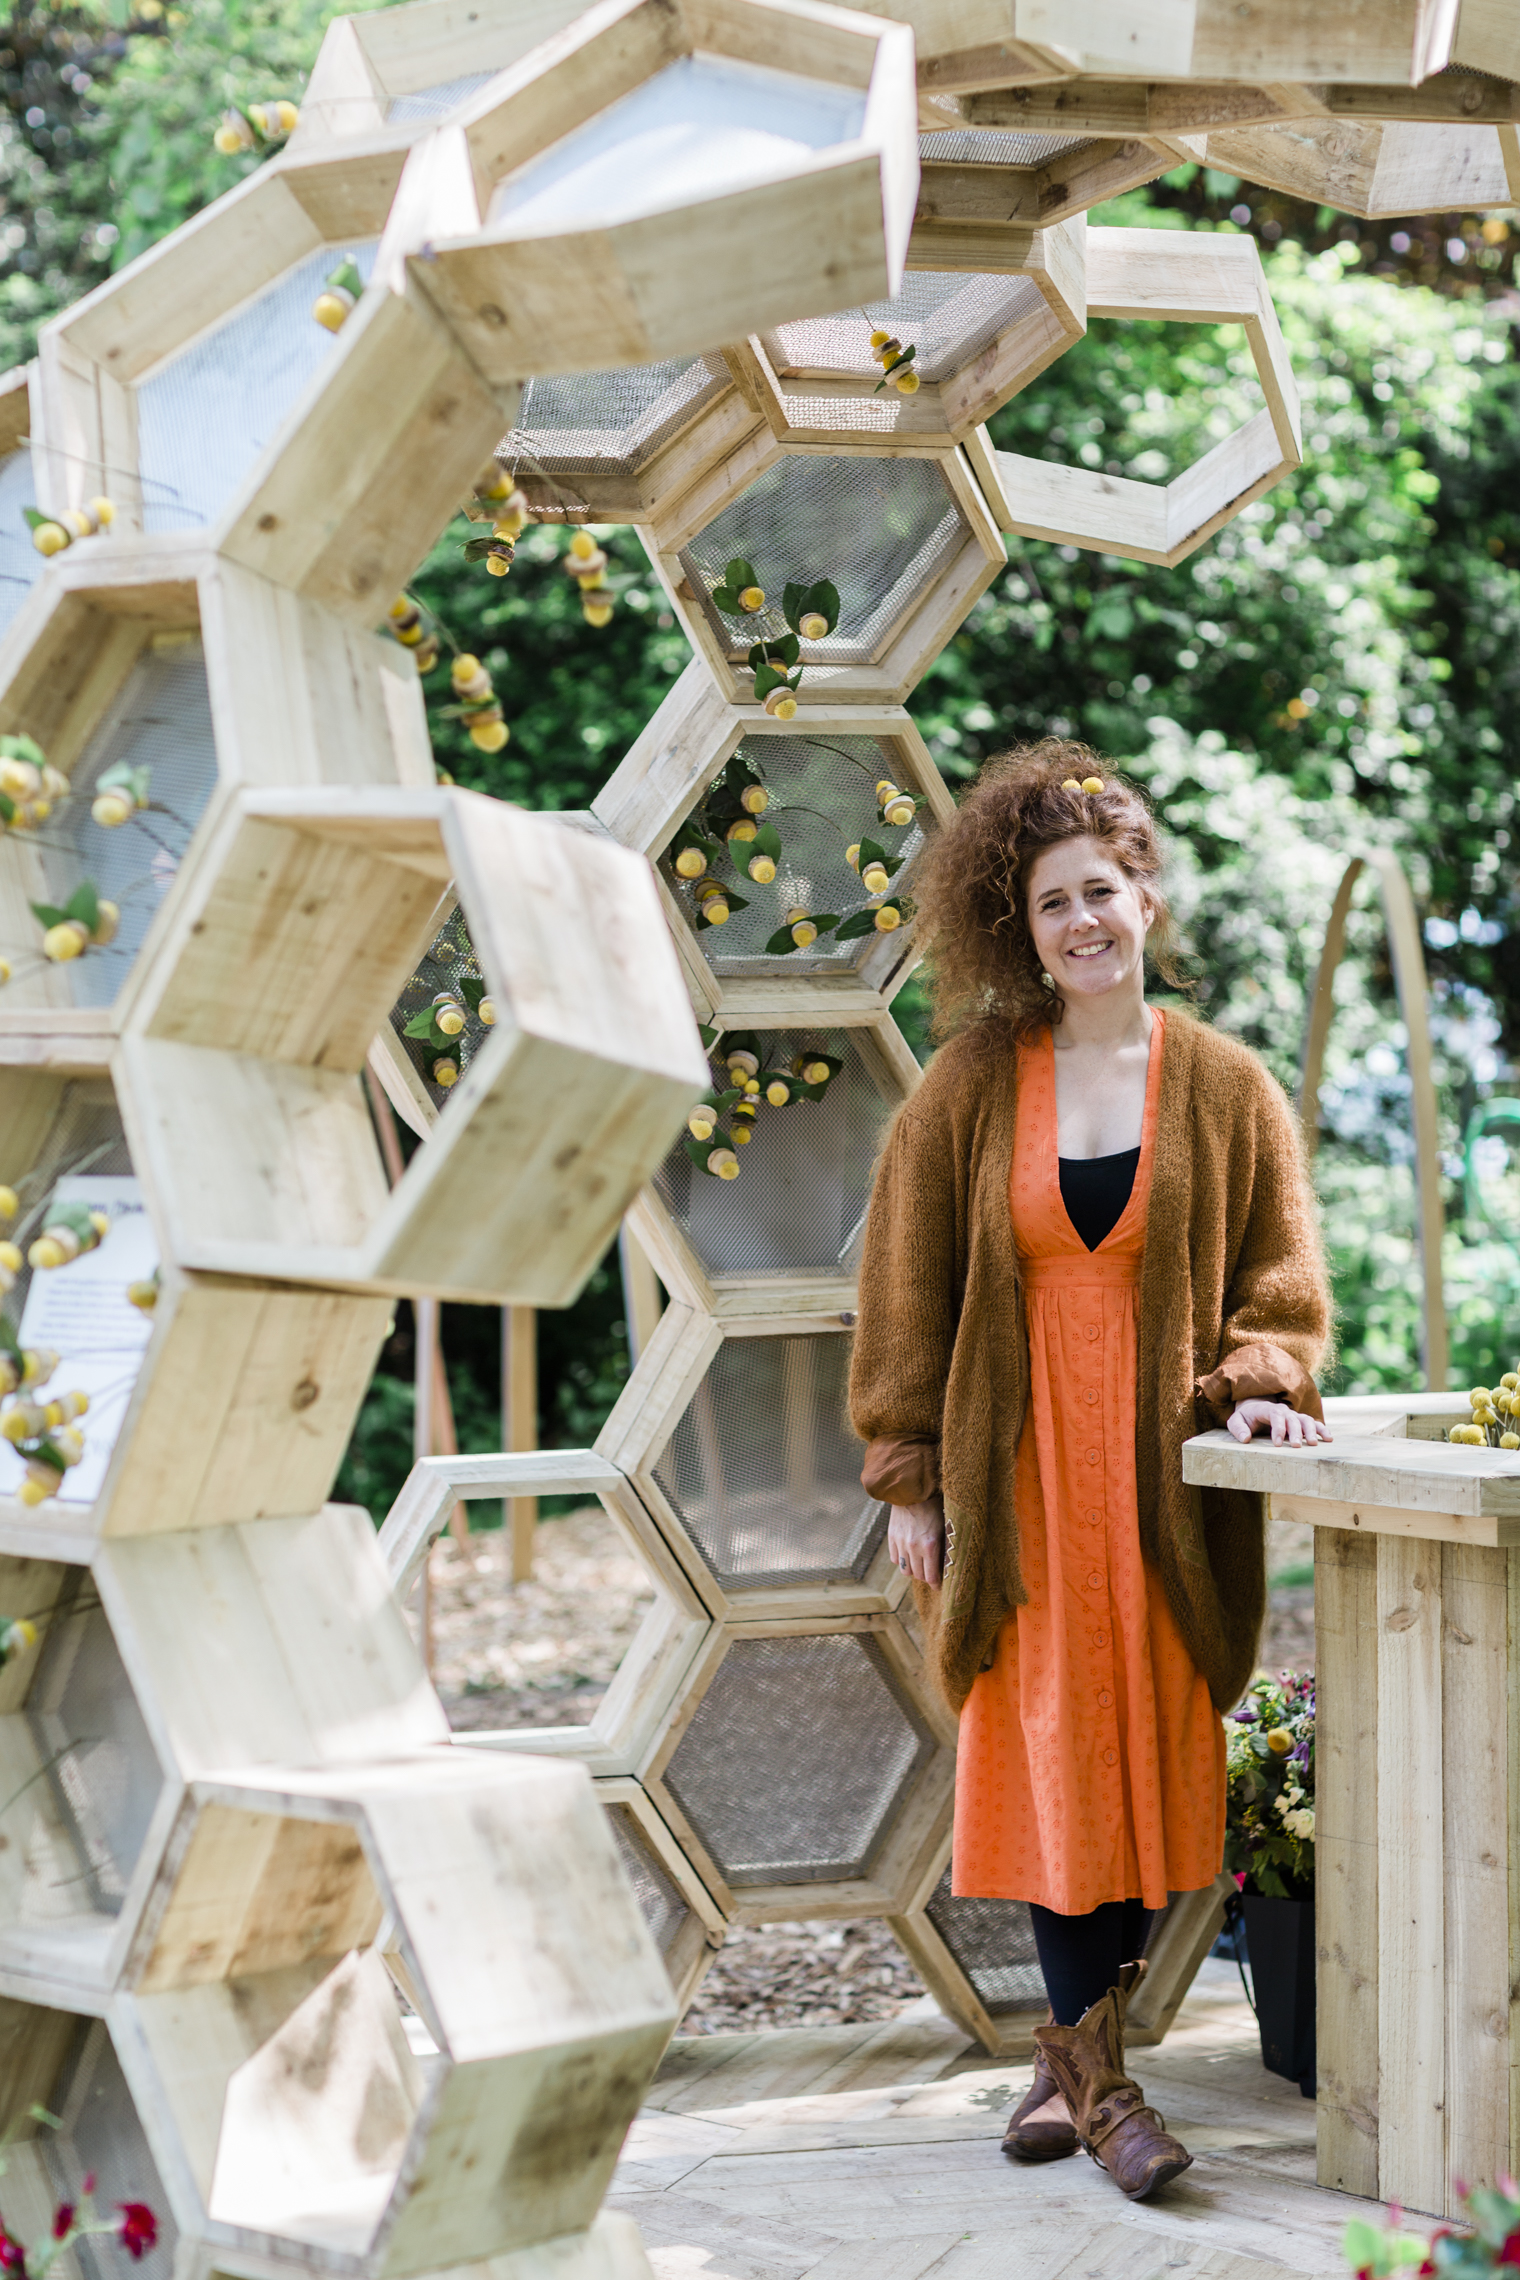 McQueens Flower School Principal, Sophie Powell at the RHS Chelsea Flower Show 2019